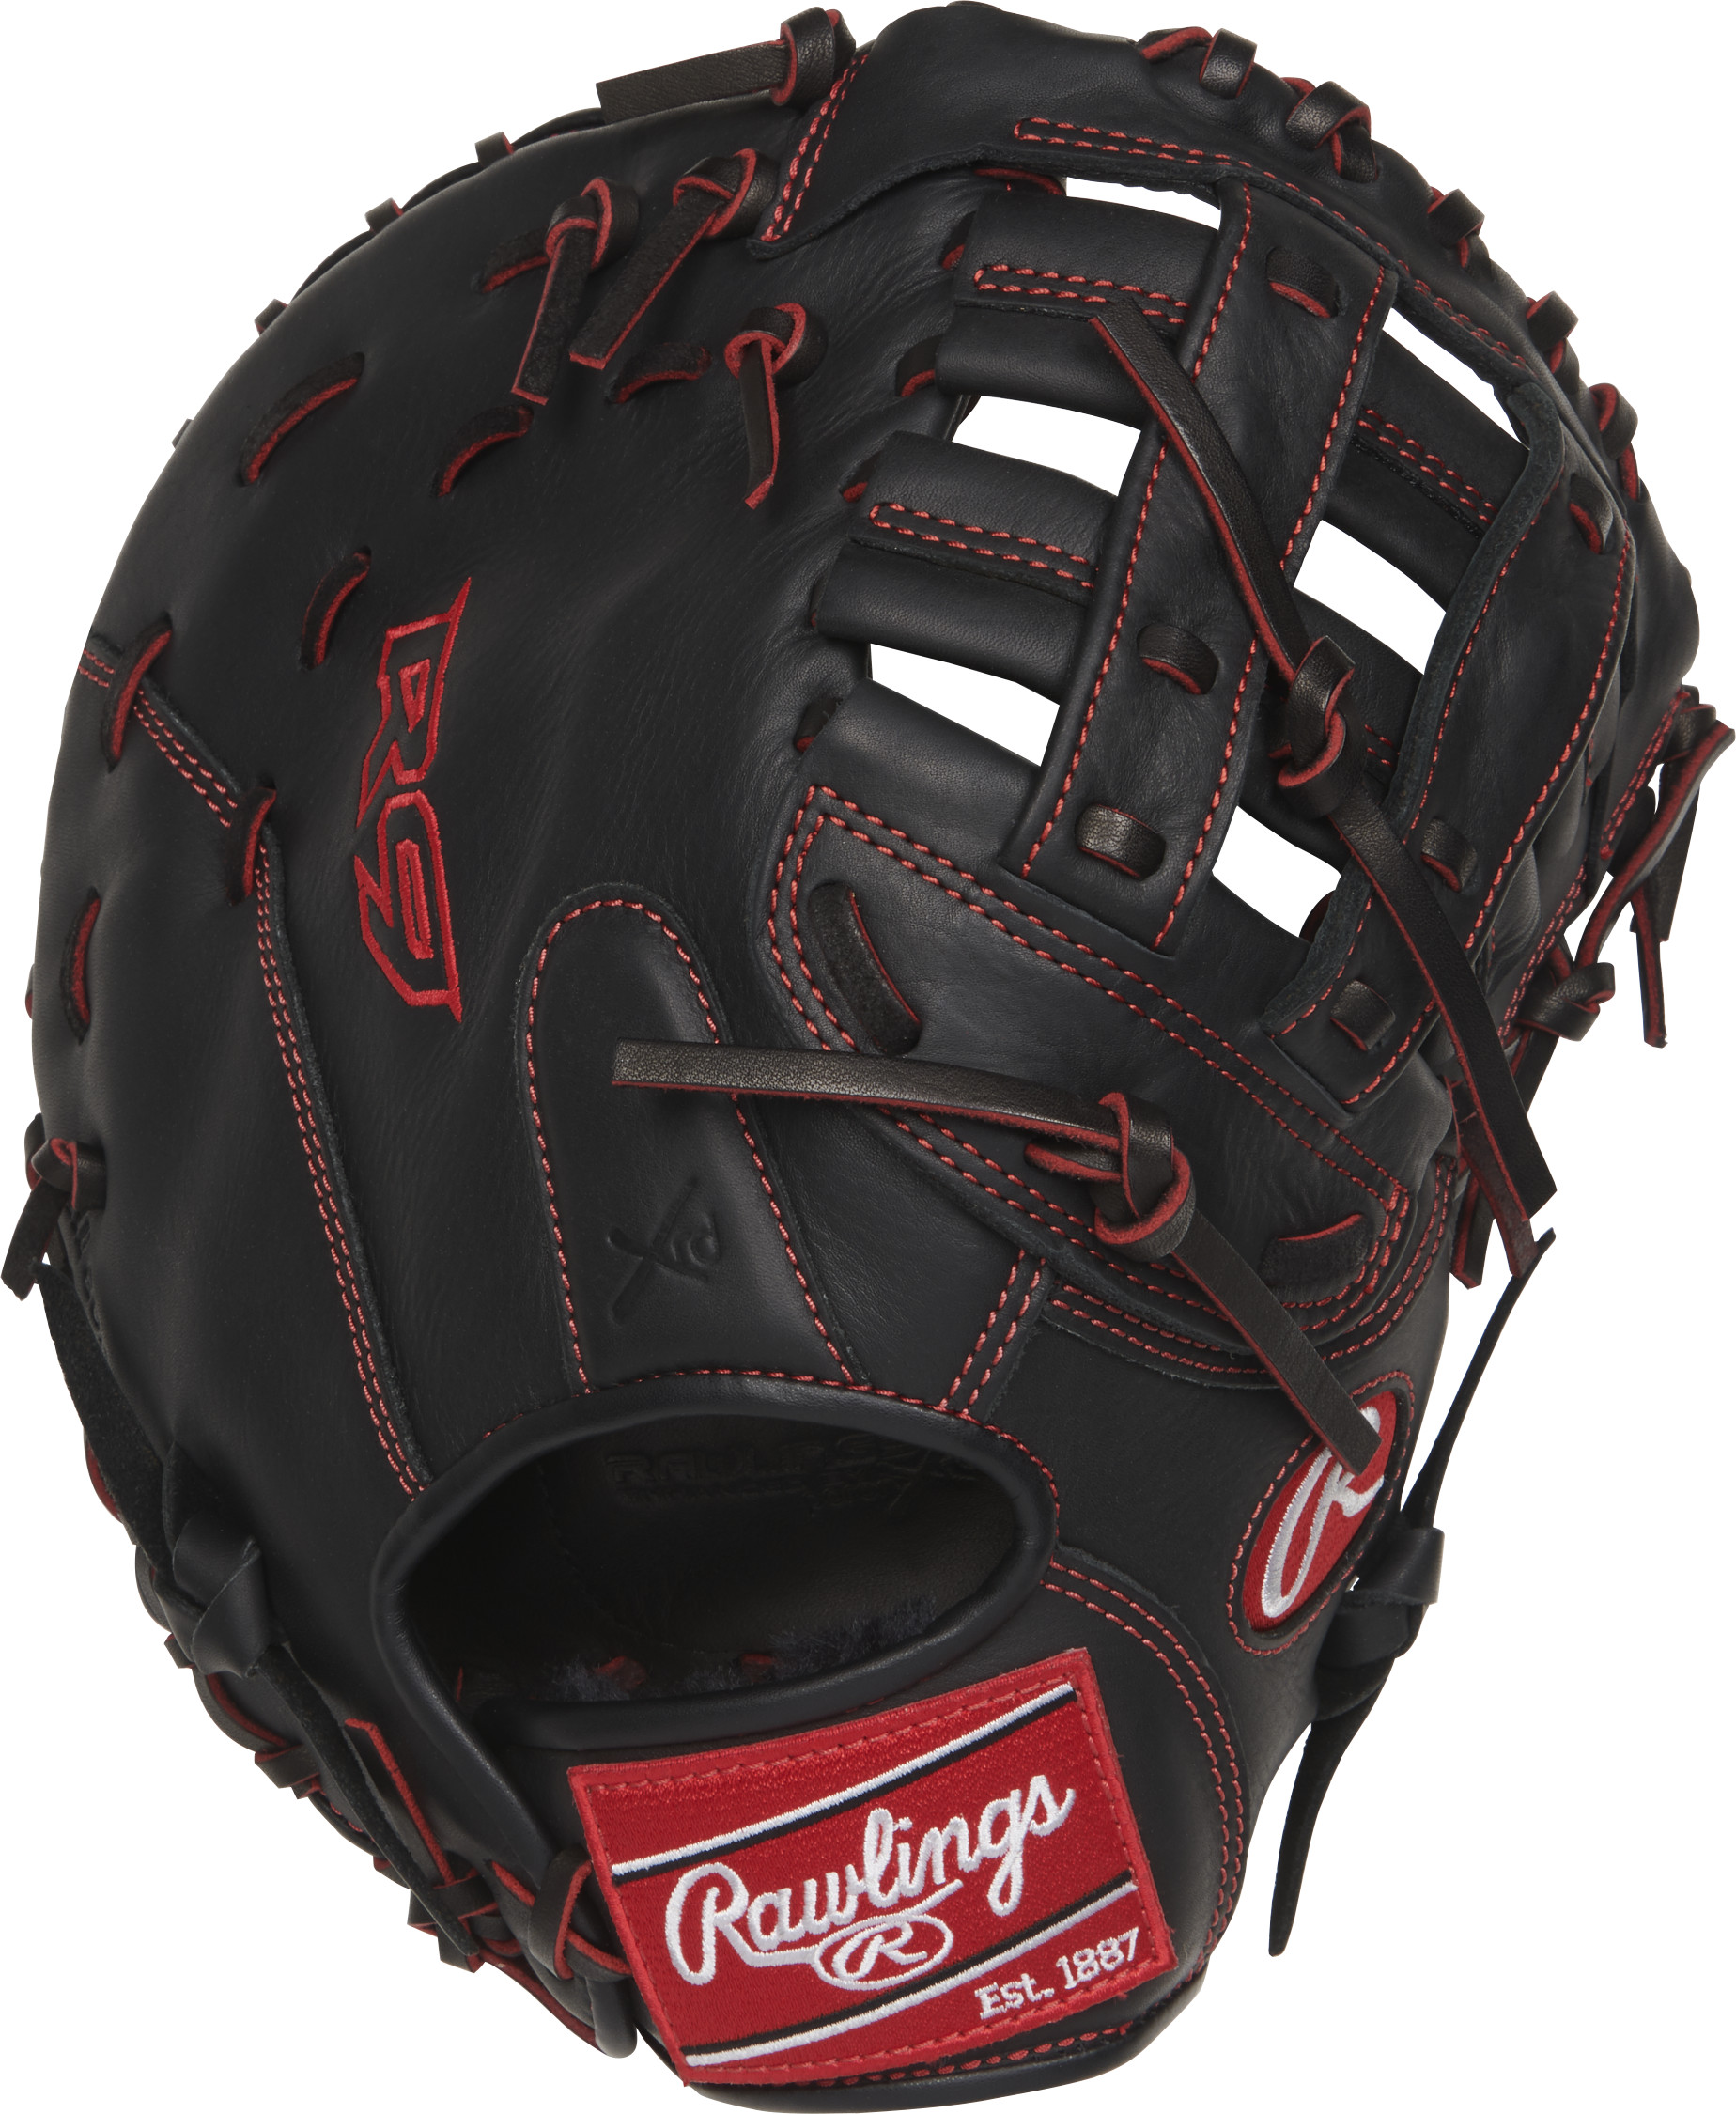 http://www.bestbatdeals.com/images/gloves/rawlings/R9YPTFM16B-2.jpg